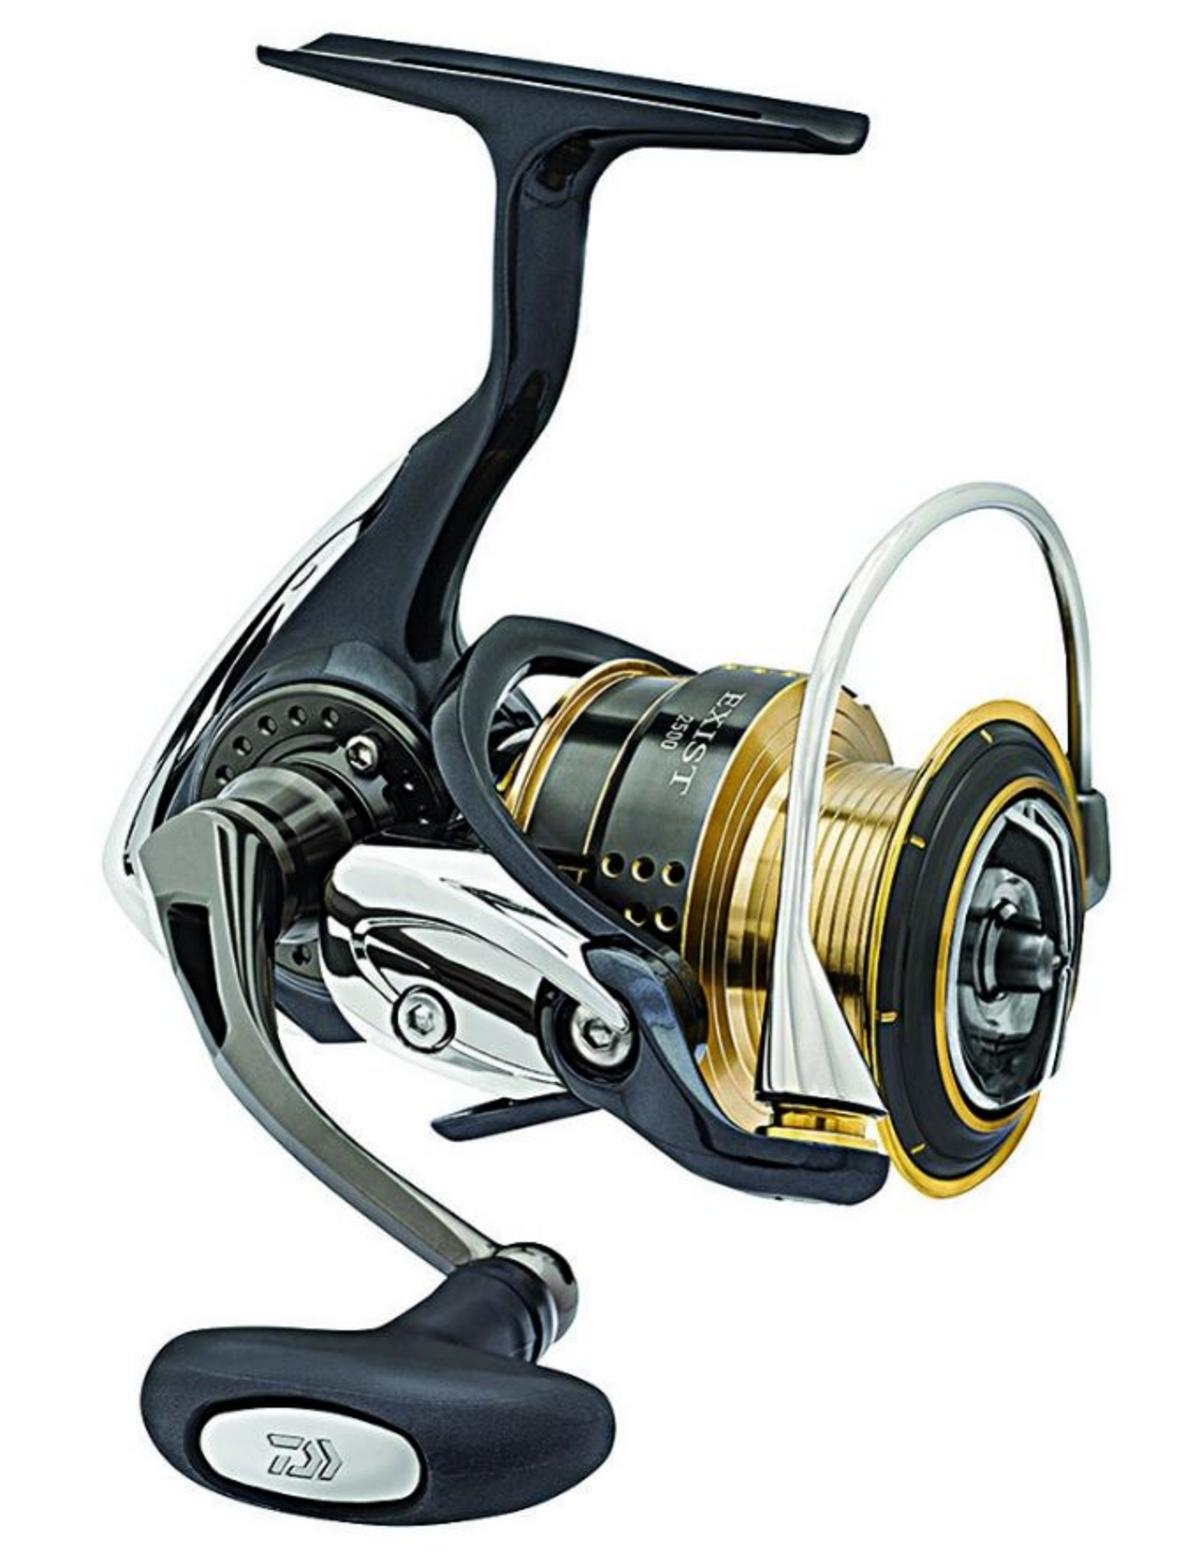 New Daiwa 15 Exist Saltwater Freshwater Spinning Reel 15EX2500